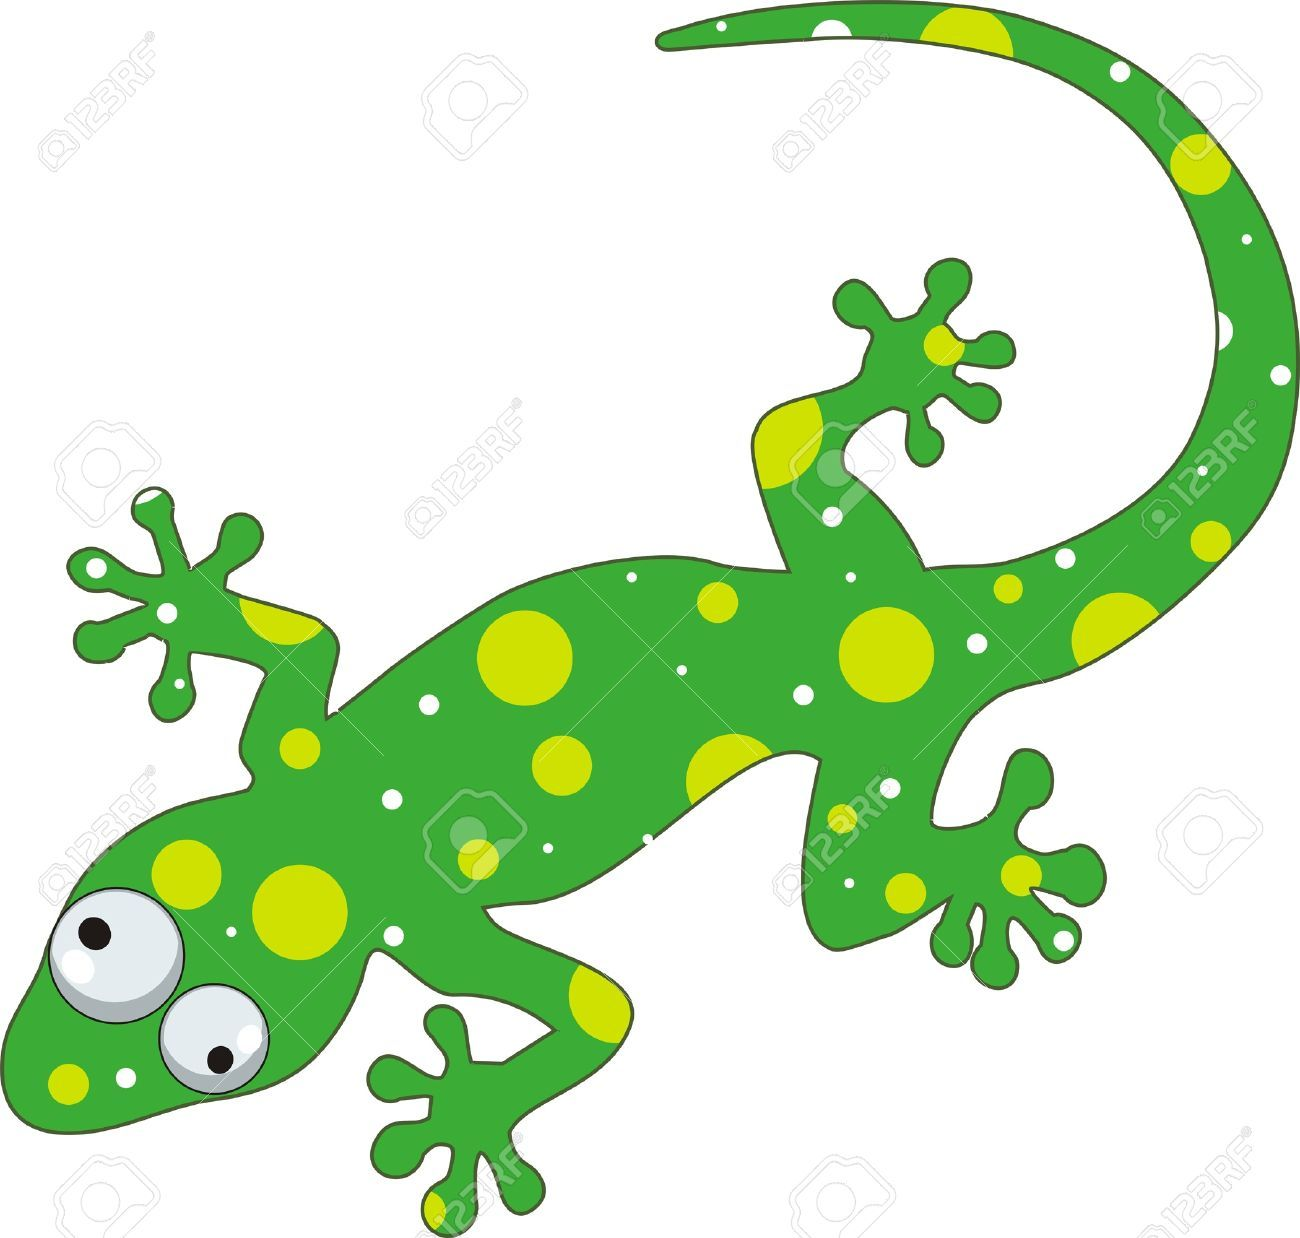 cute lizard clipart at getdrawings com free for personal use cute rh getdrawings com lizard clipart free lizard clip art images